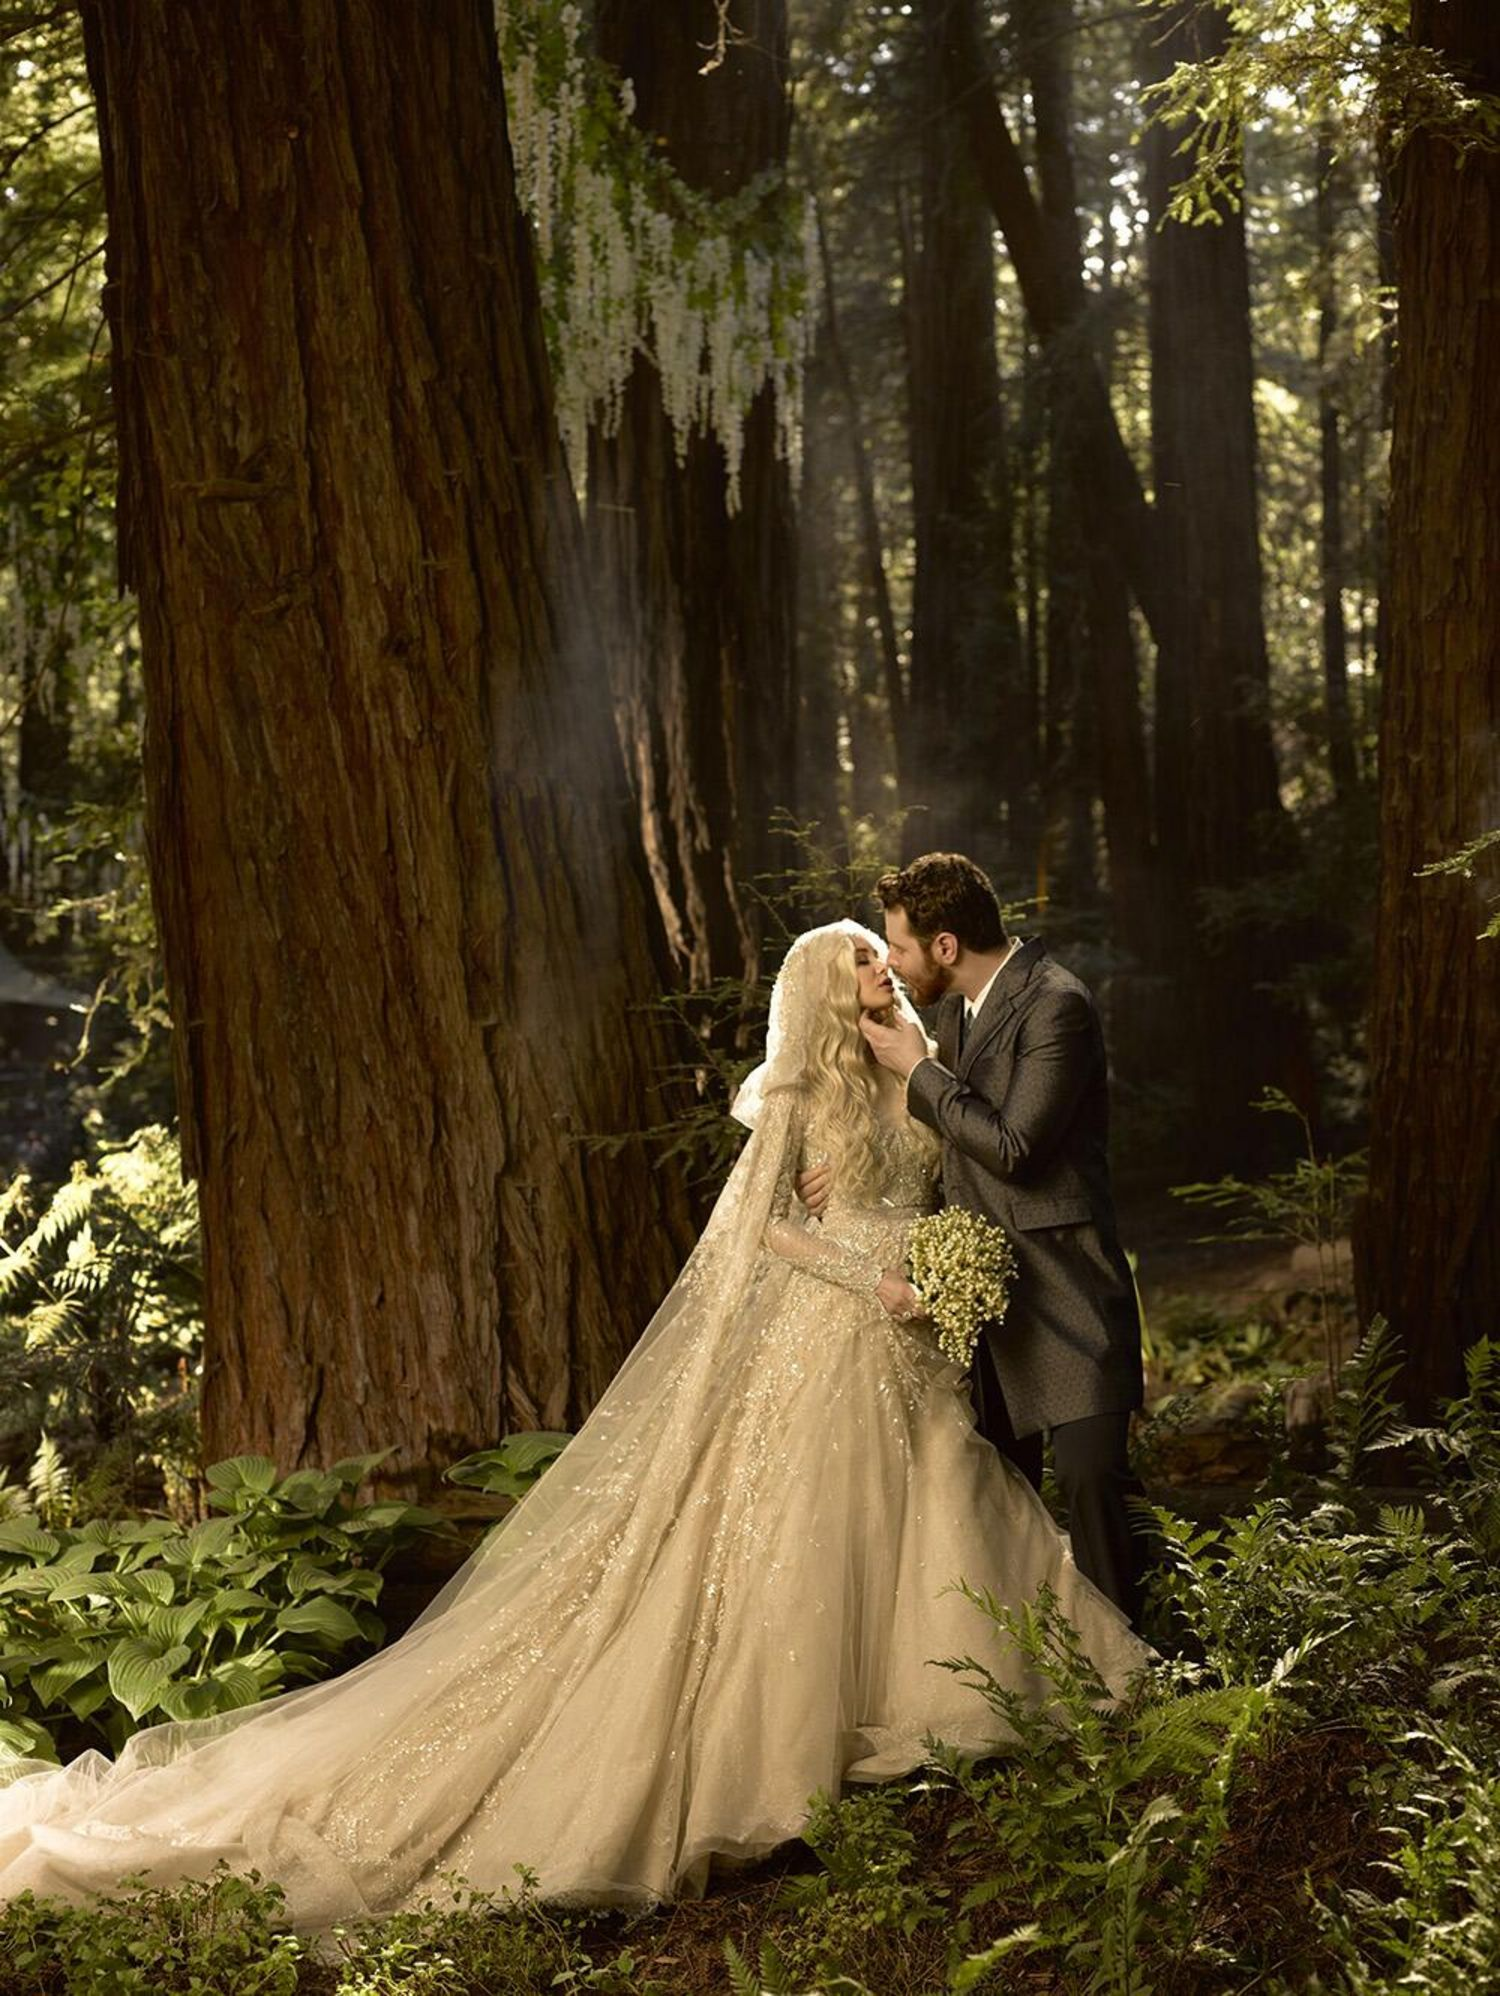 I'm SERIOUSLY in love with this.  The trees, the lighting, but most especially THE DRESS!!!! Can I have it?